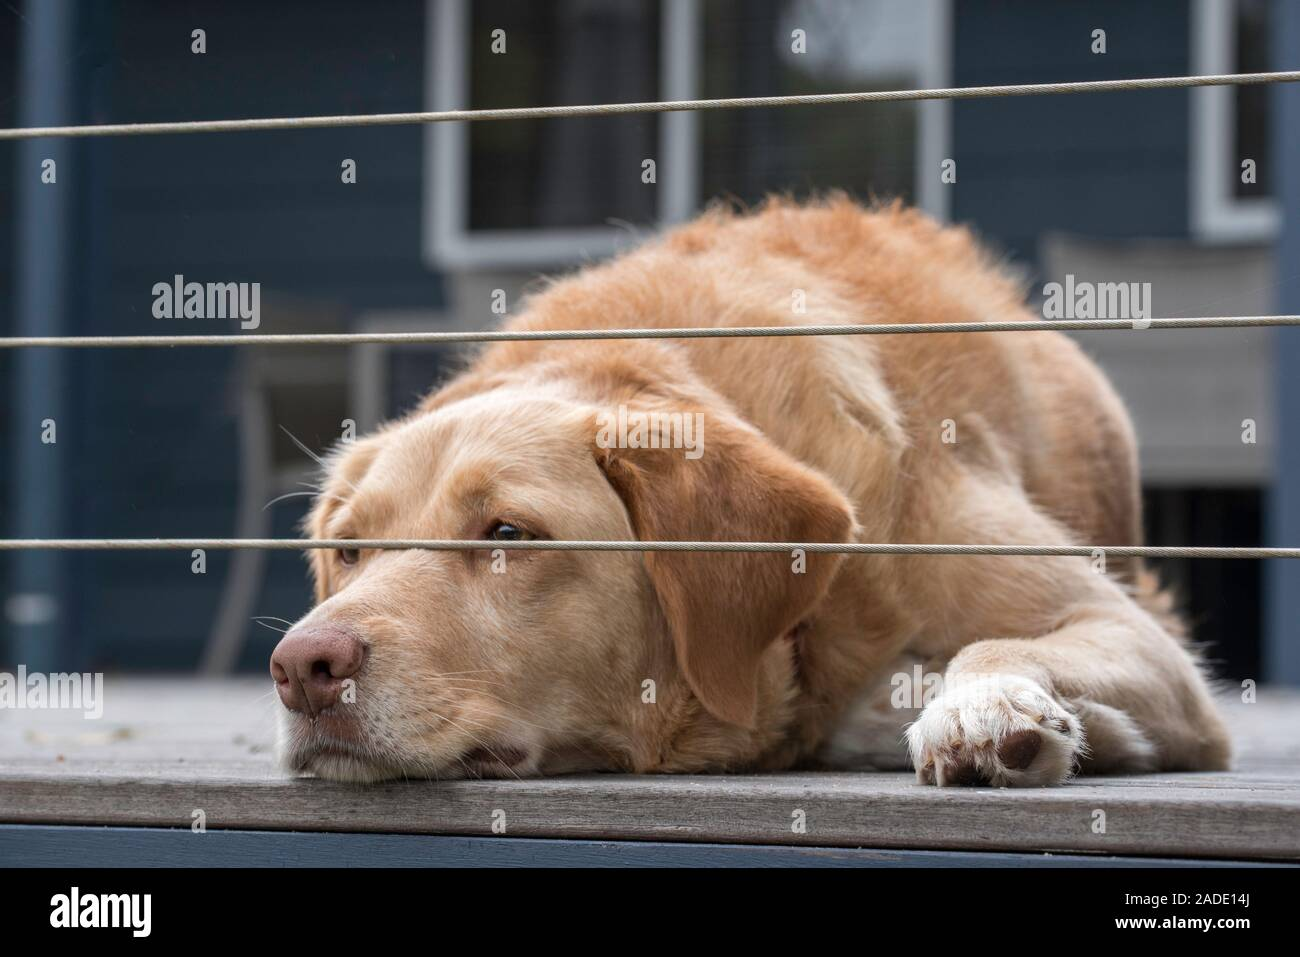 Indy An Australian Cross Breed Labrador Border Collie Dog Rescued By The Rspca Is Seen Here Lying On A Deck Watching Under A Wire Fence Stock Photo Alamy